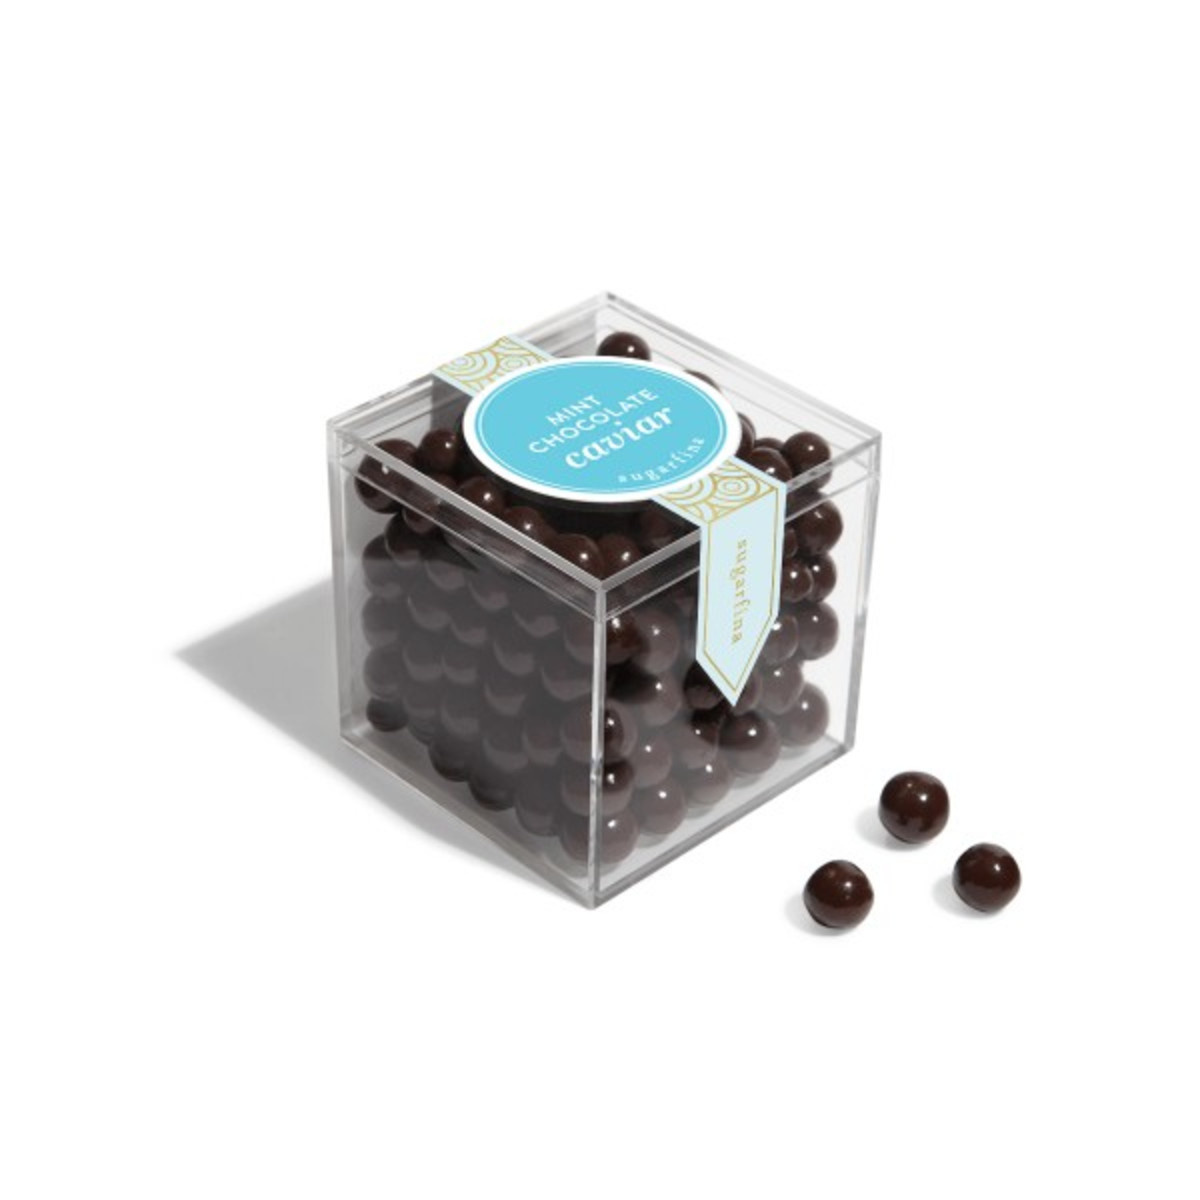 Sugarfina Mint Chocolate Caviar